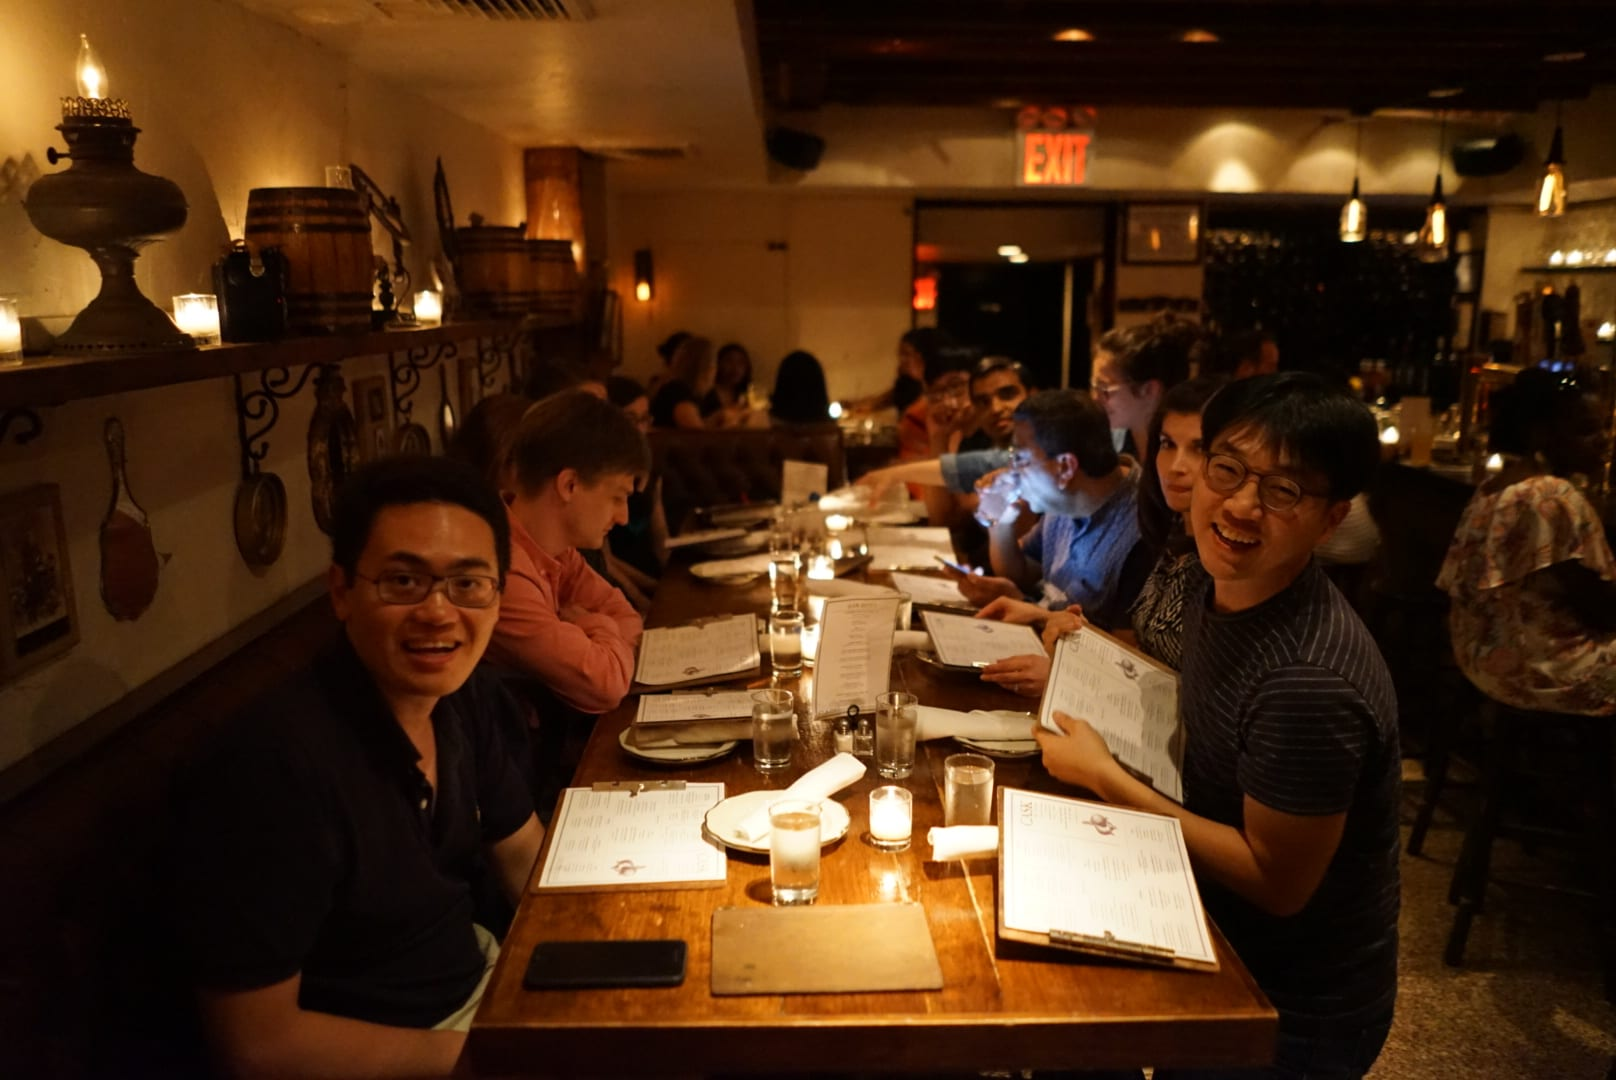 June 29th lab meeting dinner